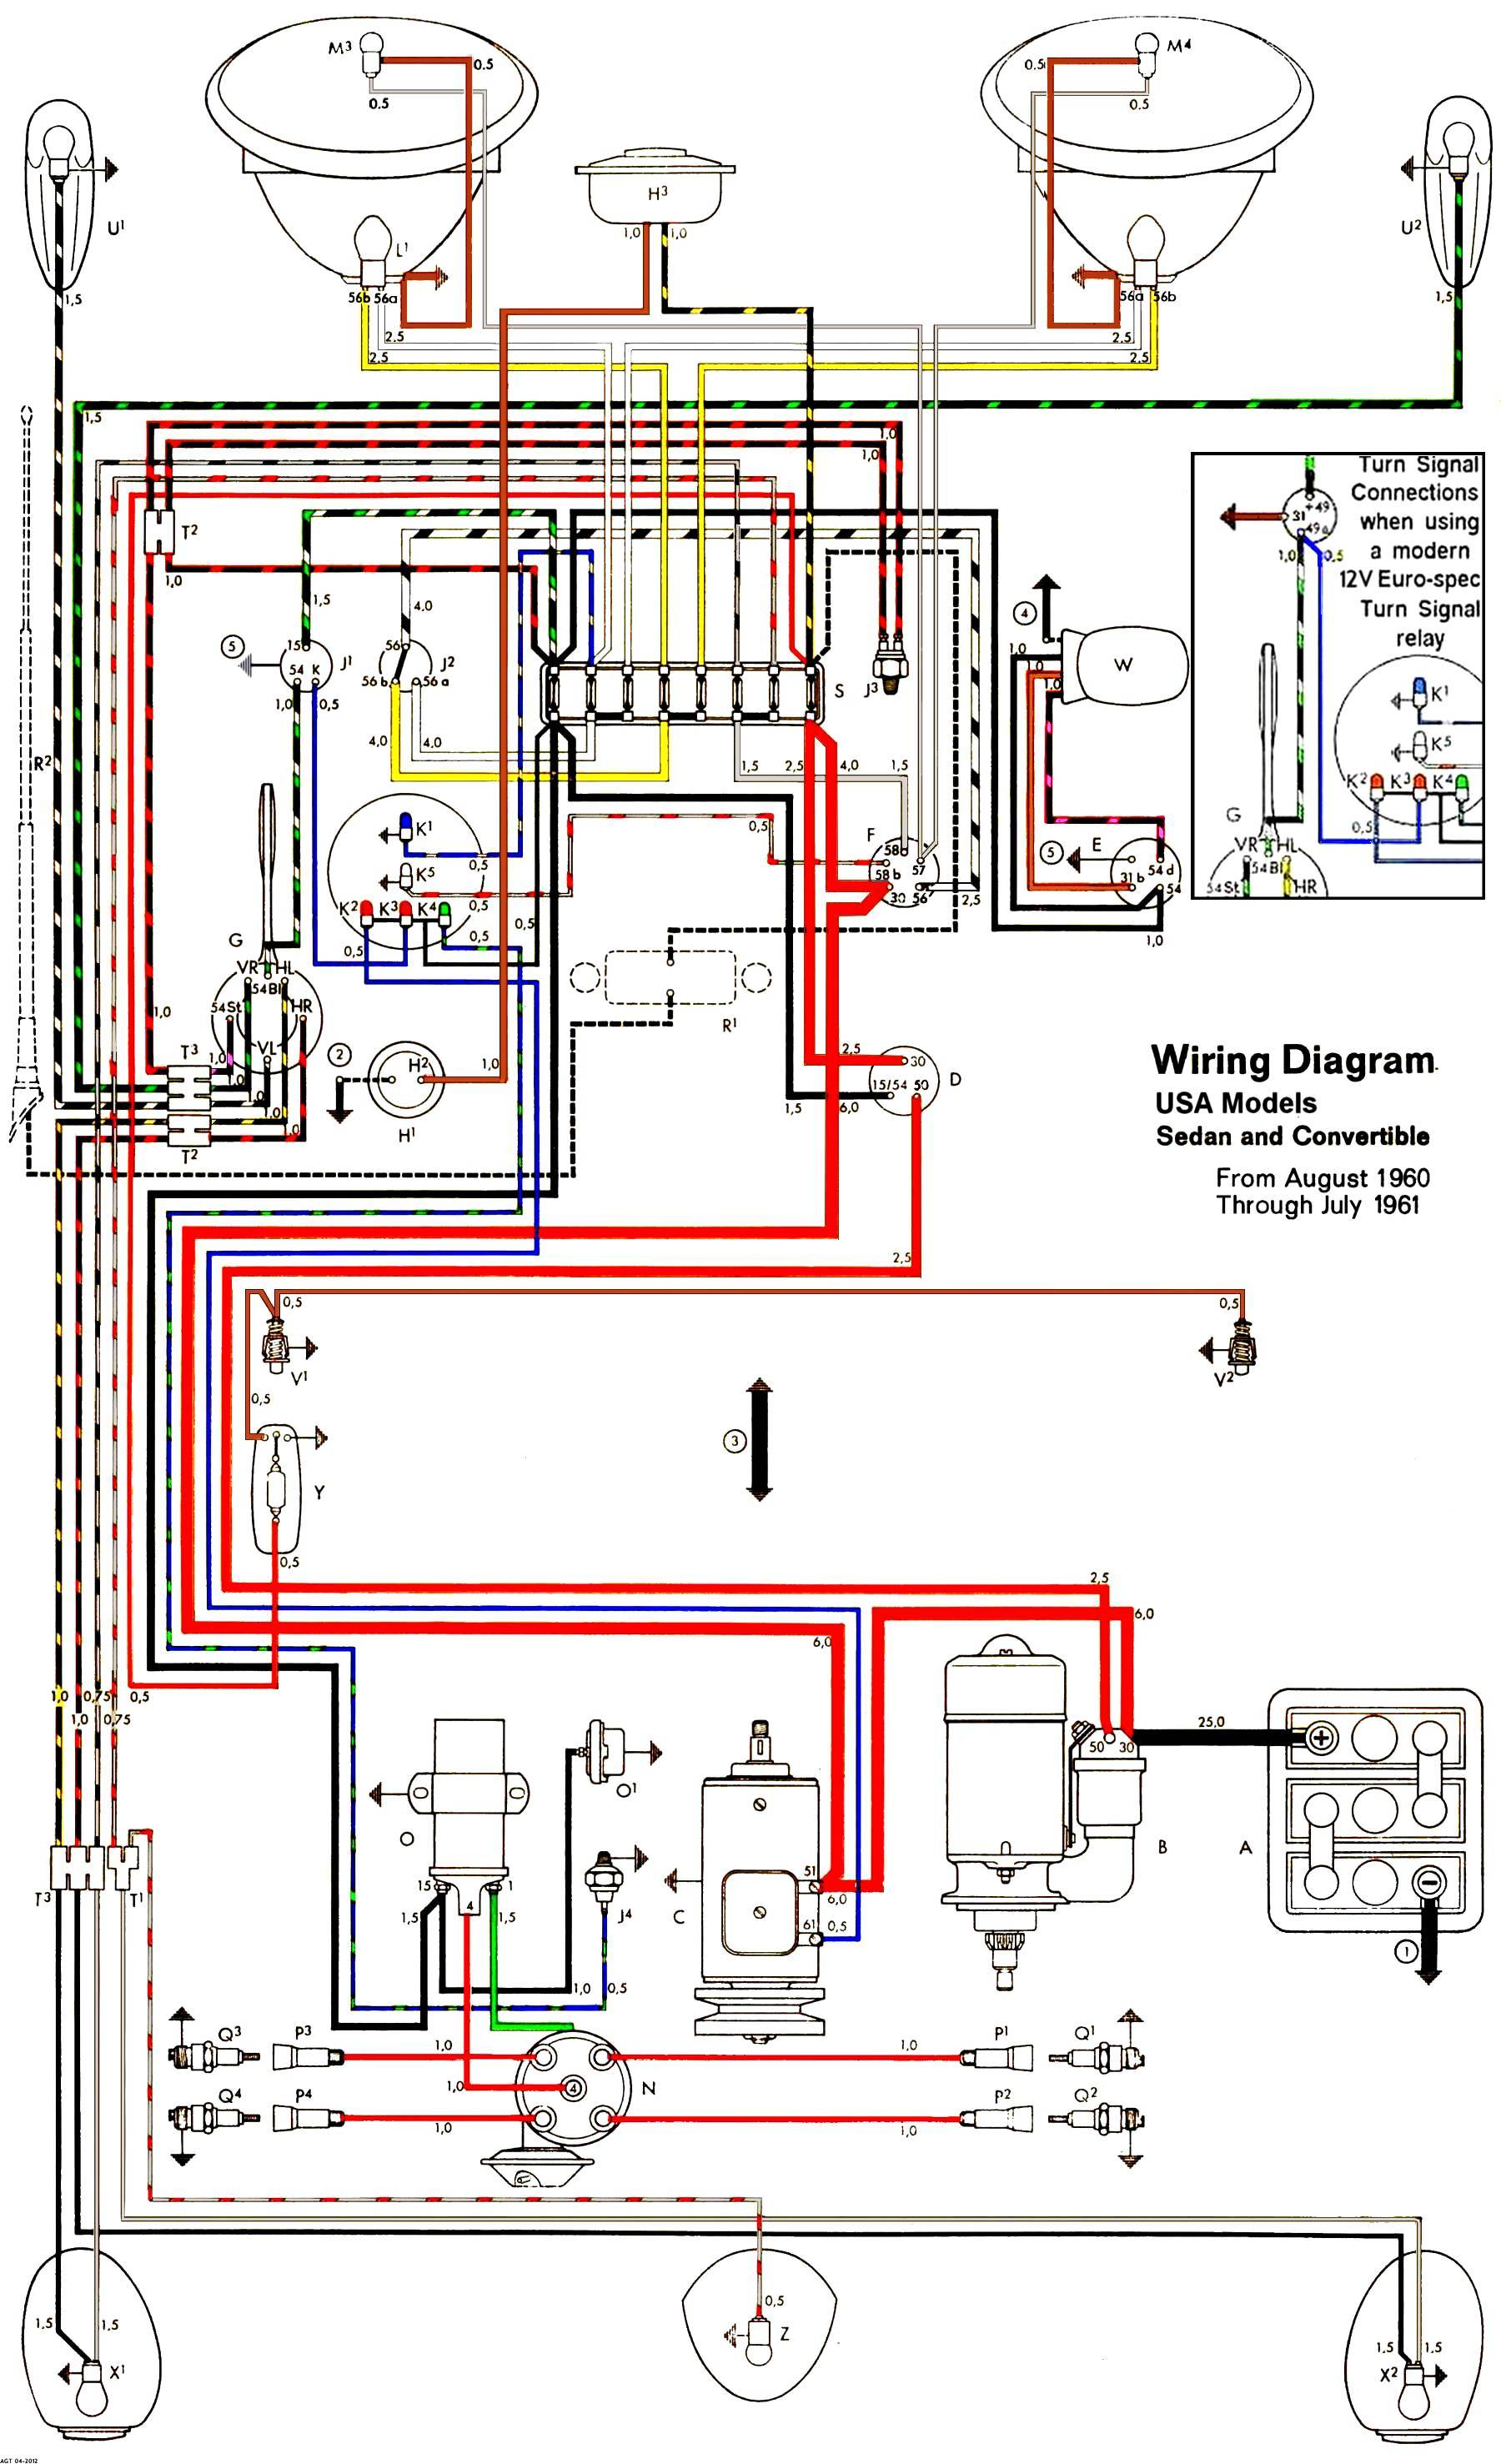 1961USA T1 thesamba com type 1 wiring diagrams 1968 ford wiring diagrams at arjmand.co